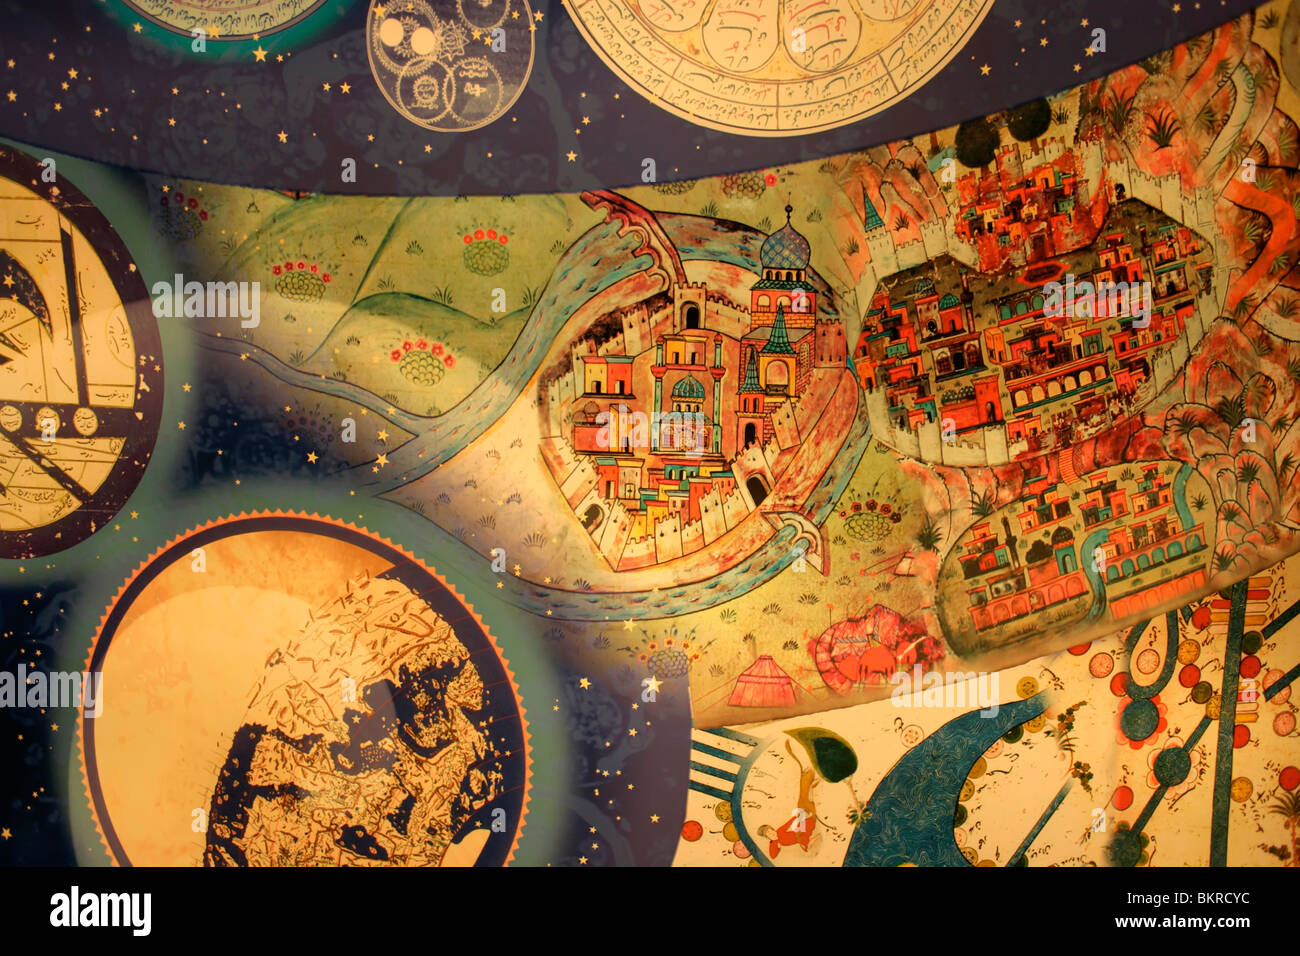 Detail of a ceiling at the Museum of the History of Islamic Science and Technology, Istanbul, Turkey - Stock Image